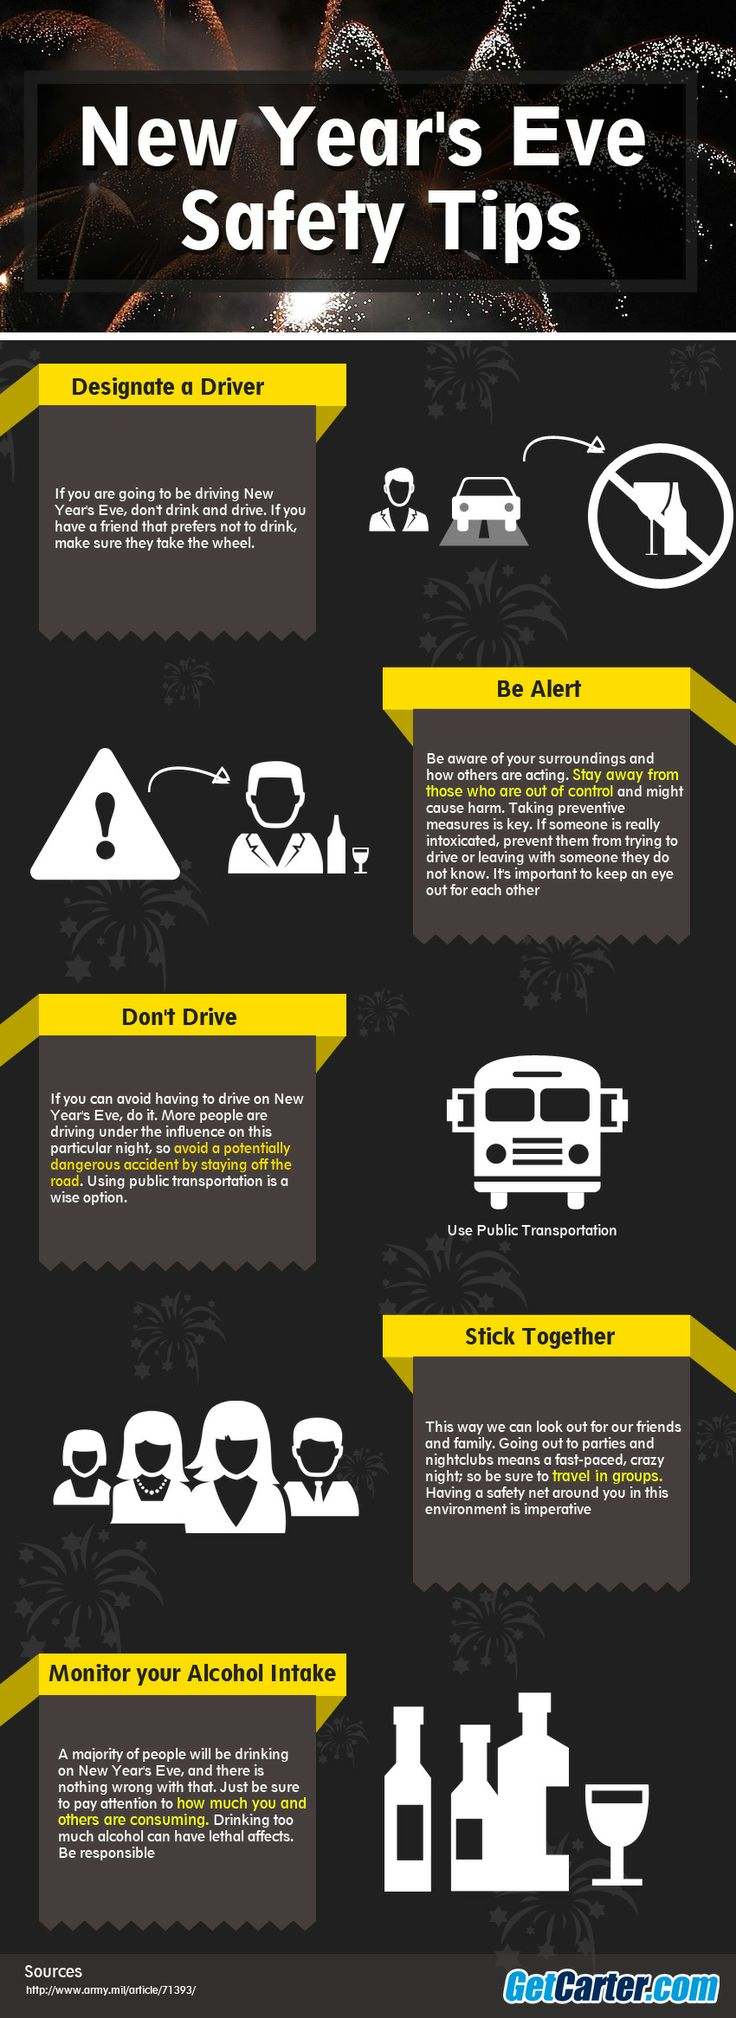 Safety Tips for New Years Eve